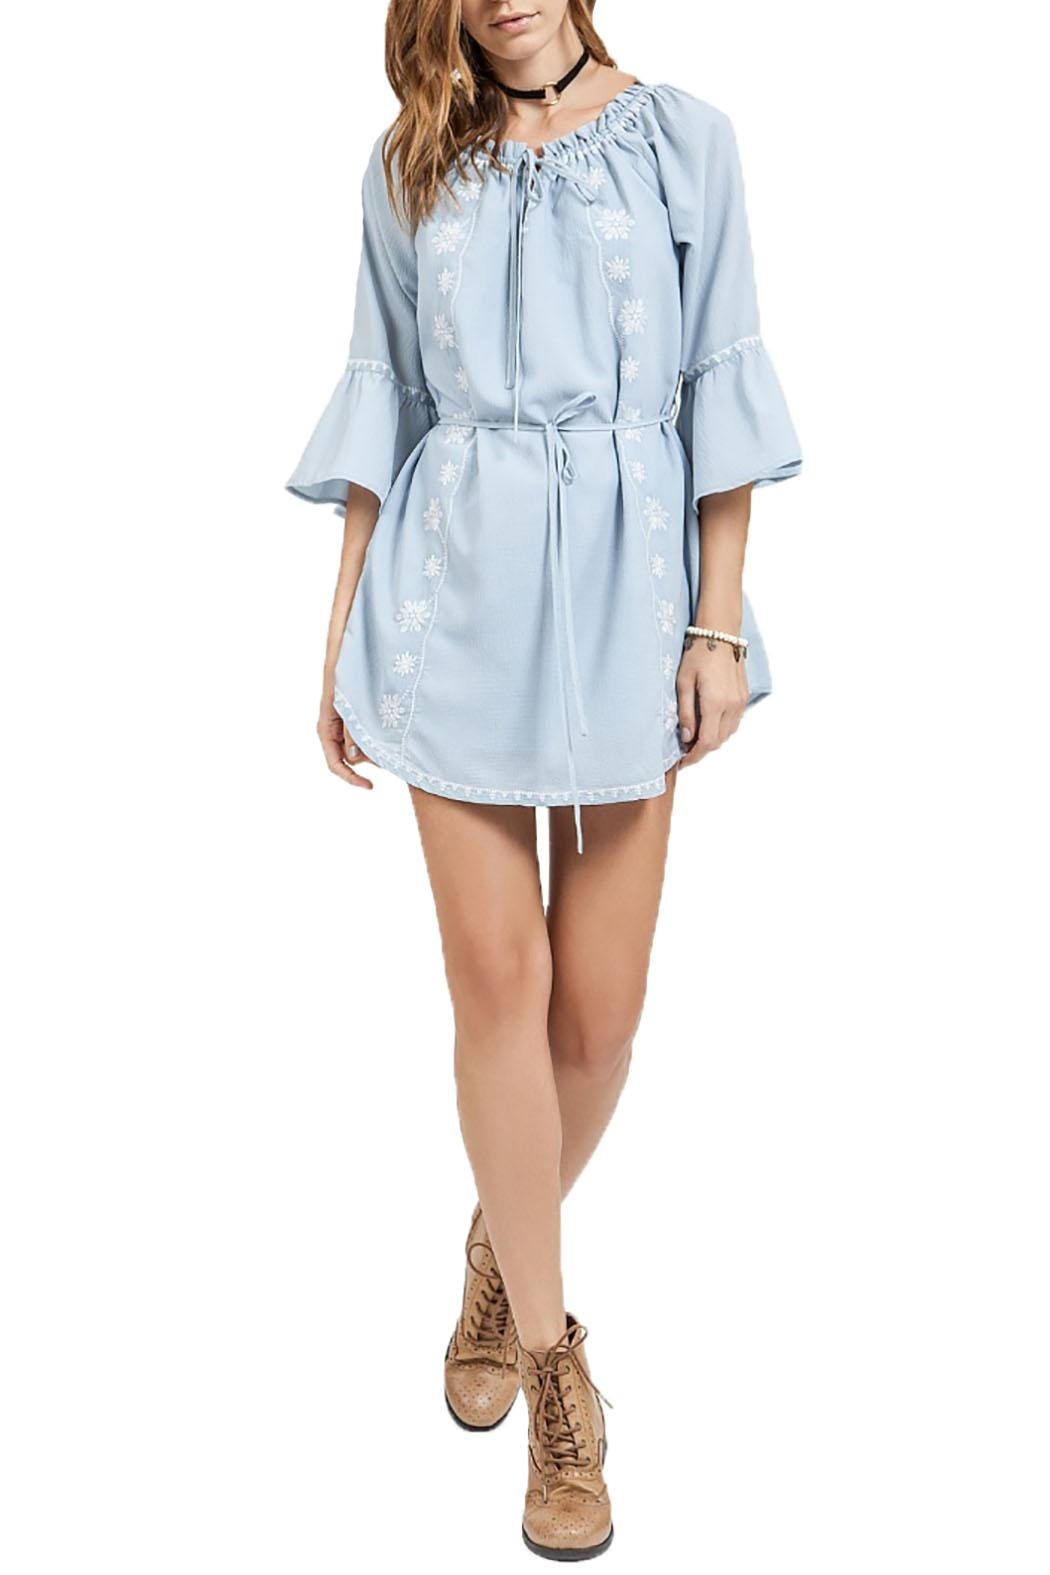 Blu Pepper Off Shoulder Dress - Main Image